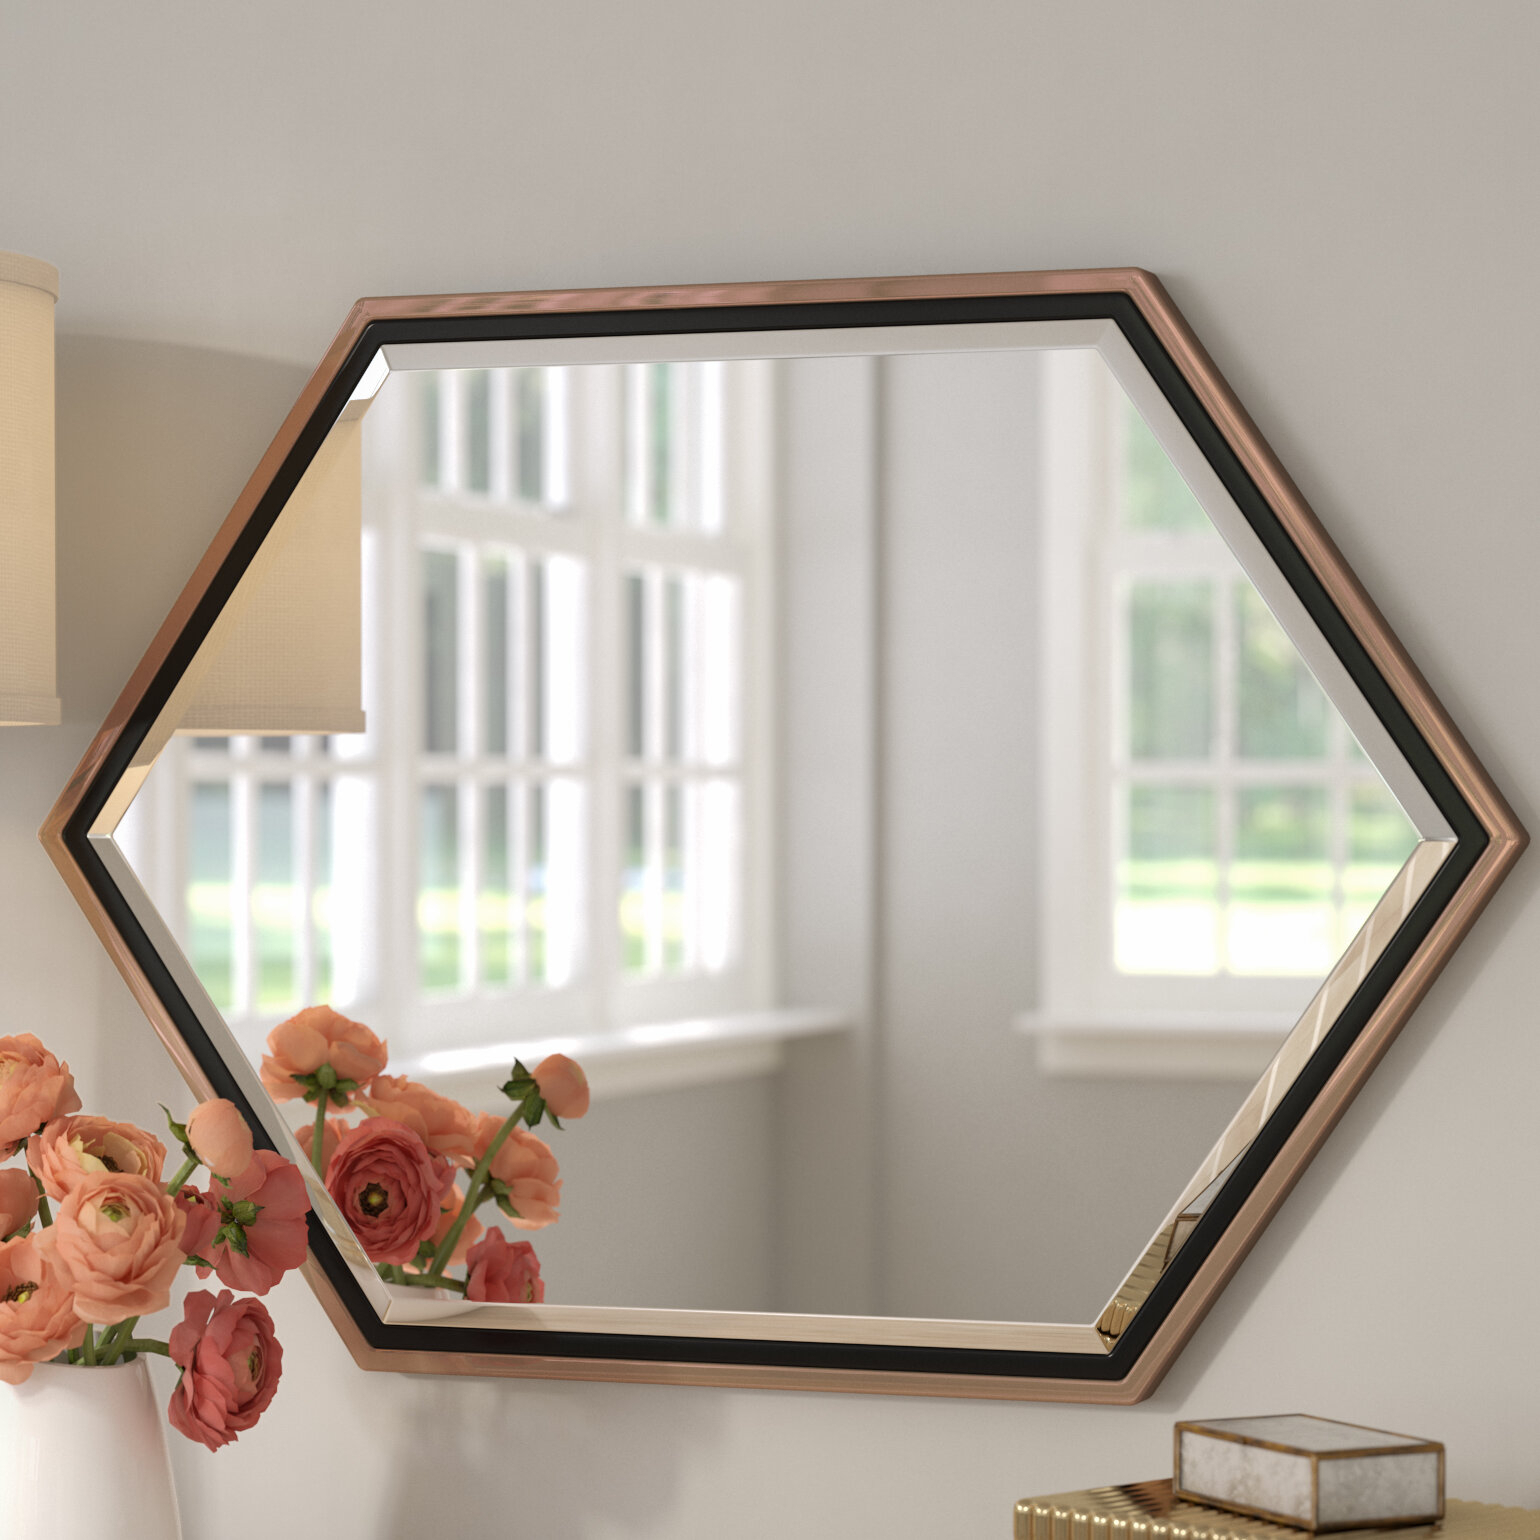 Shabby Chic Wall Mirror | Wayfair Throughout Epinal Shabby Elegance Wall Mirrors (View 3 of 20)